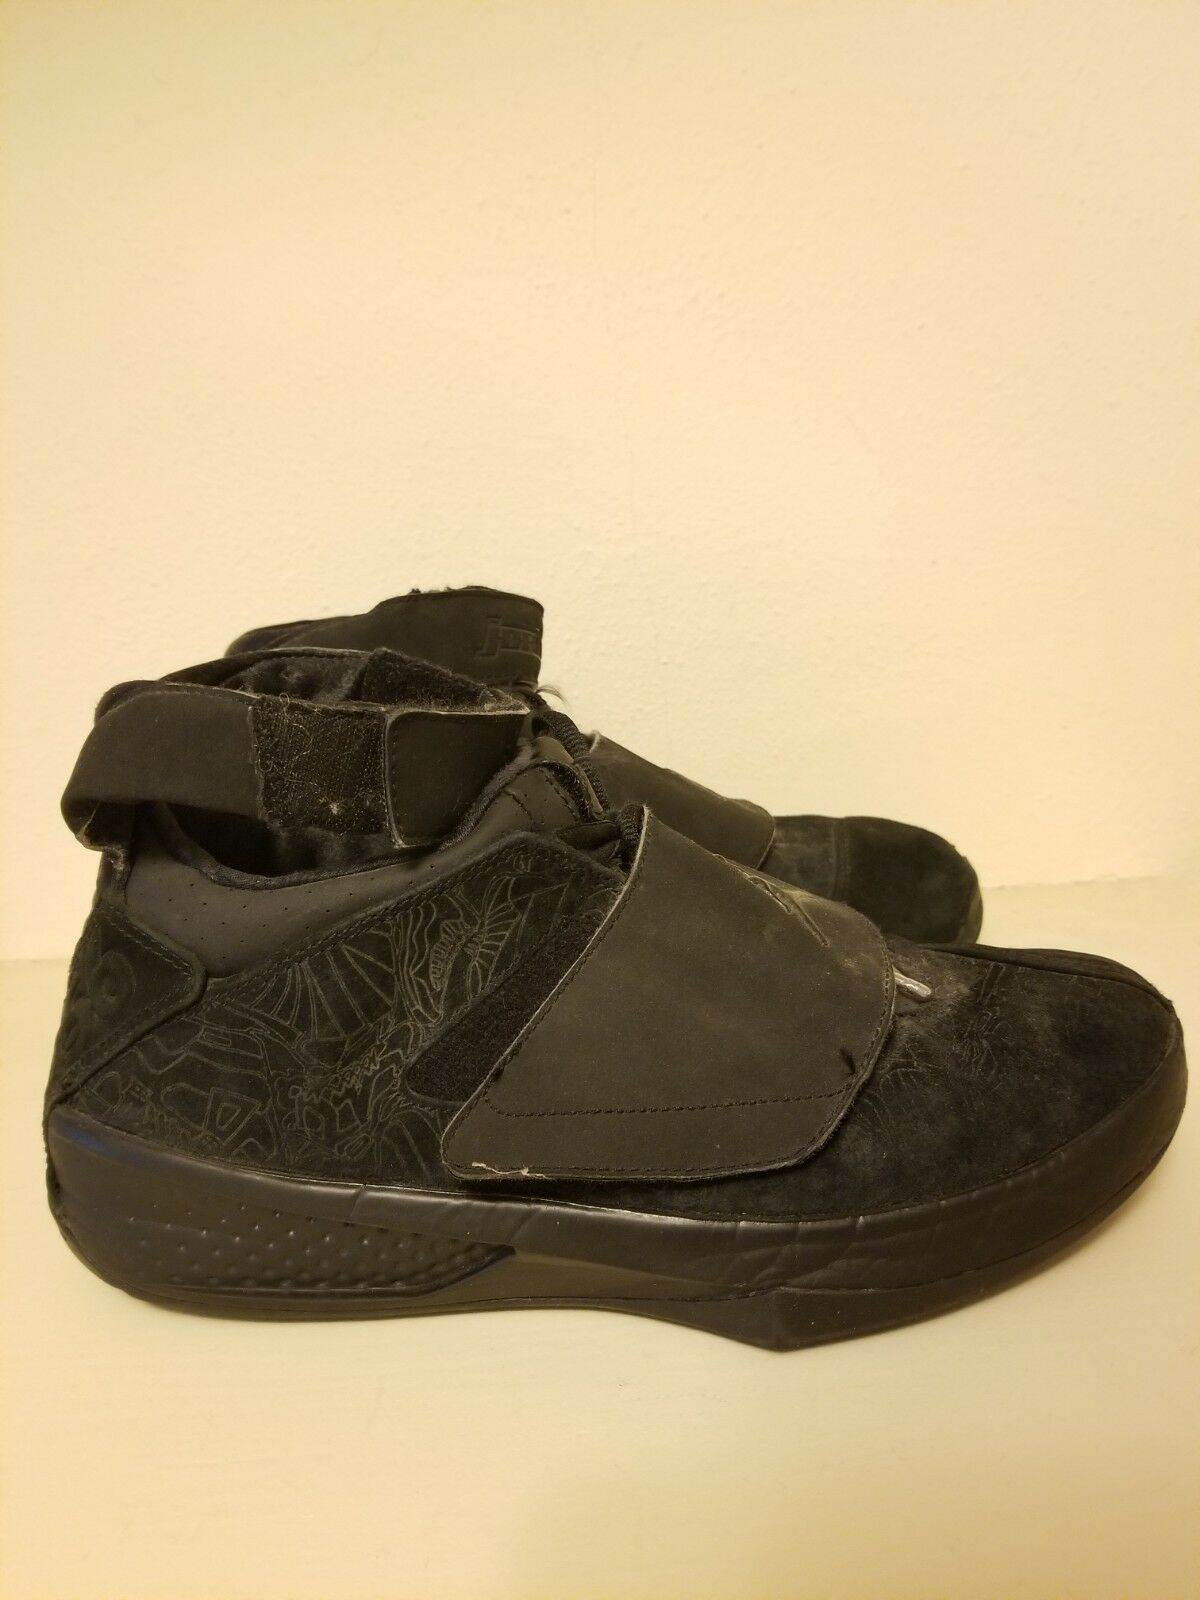 outlet store 88dc3 4d000 Nike Nike Nike Air Jordan XX 20 Countdown Pack CDP Size 9.5 (2008 Release)